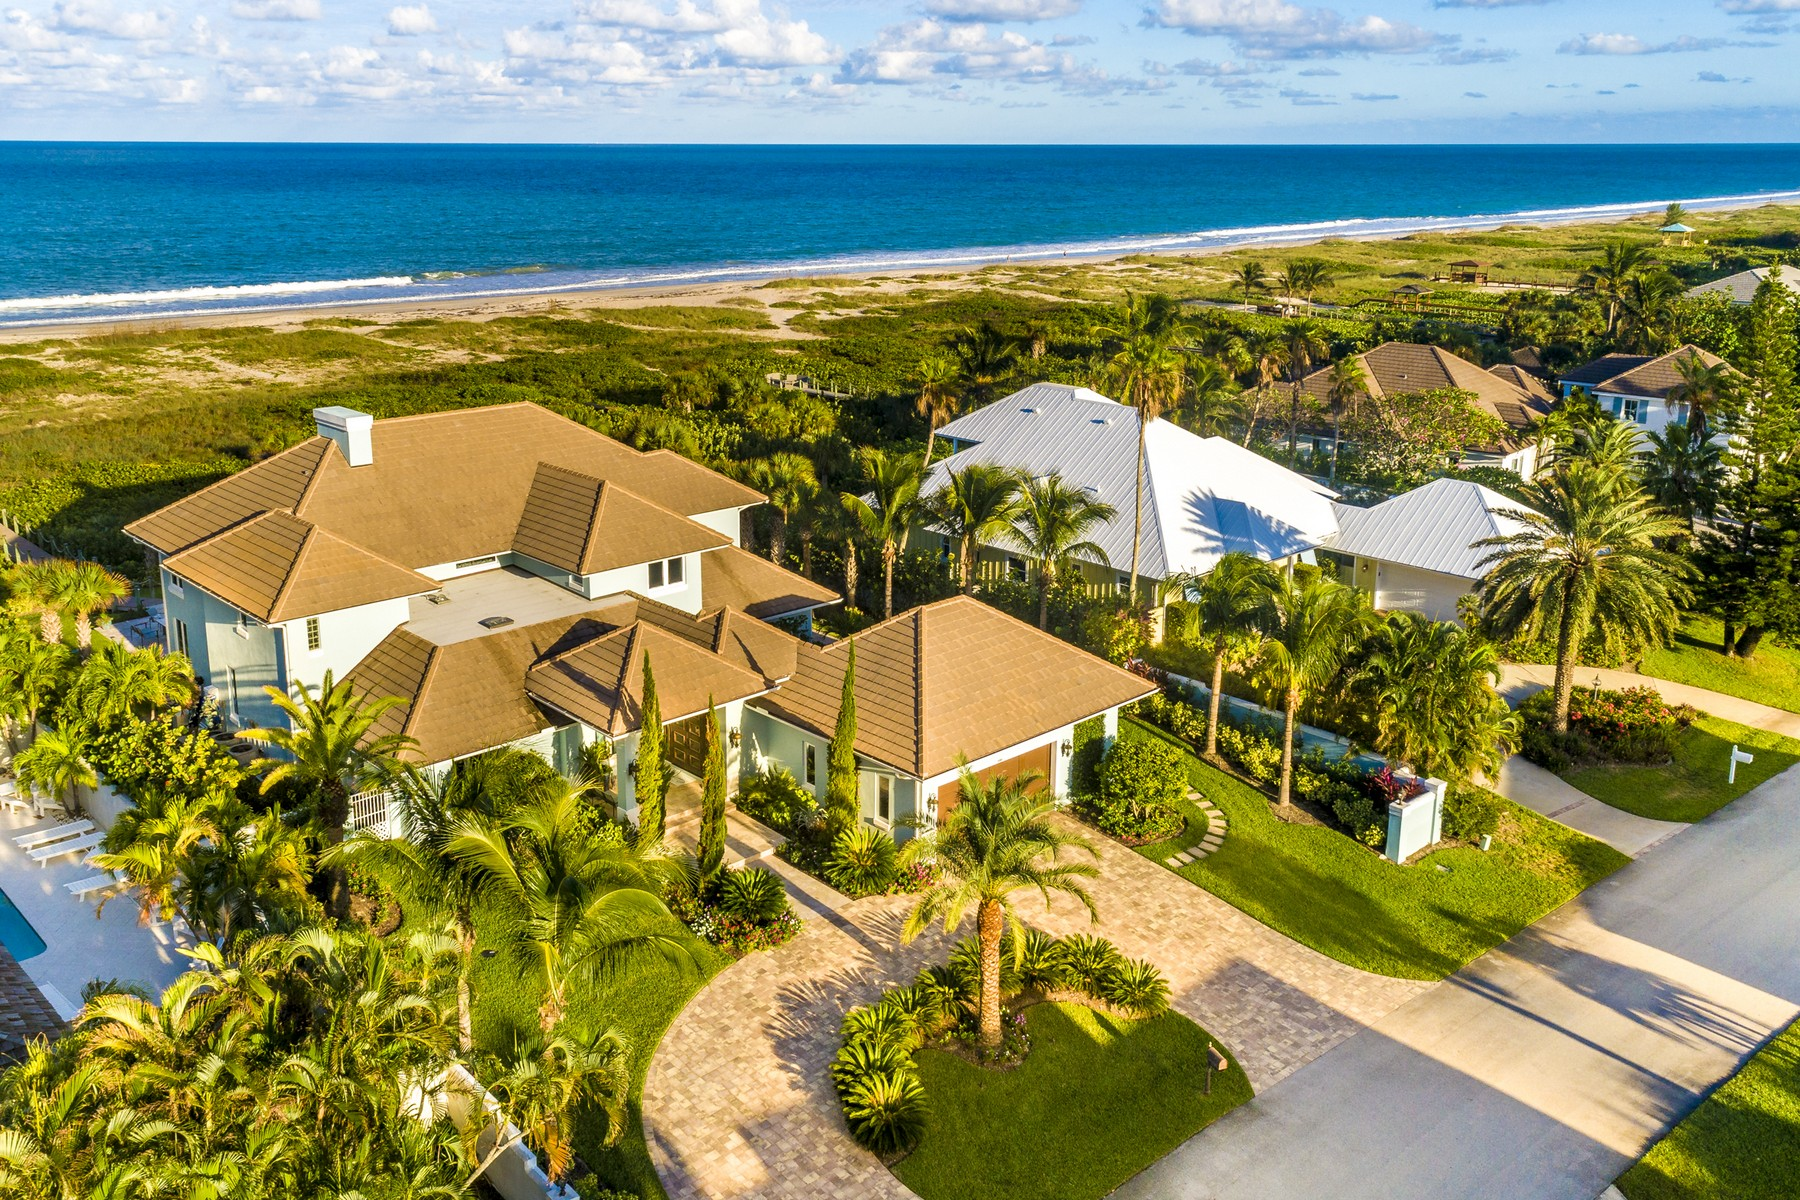 Property 용 매매 에 Stunning Oceanfront Estate 1240 Olde Doubloon Drive Vero Beach, 플로리다 32963 미국